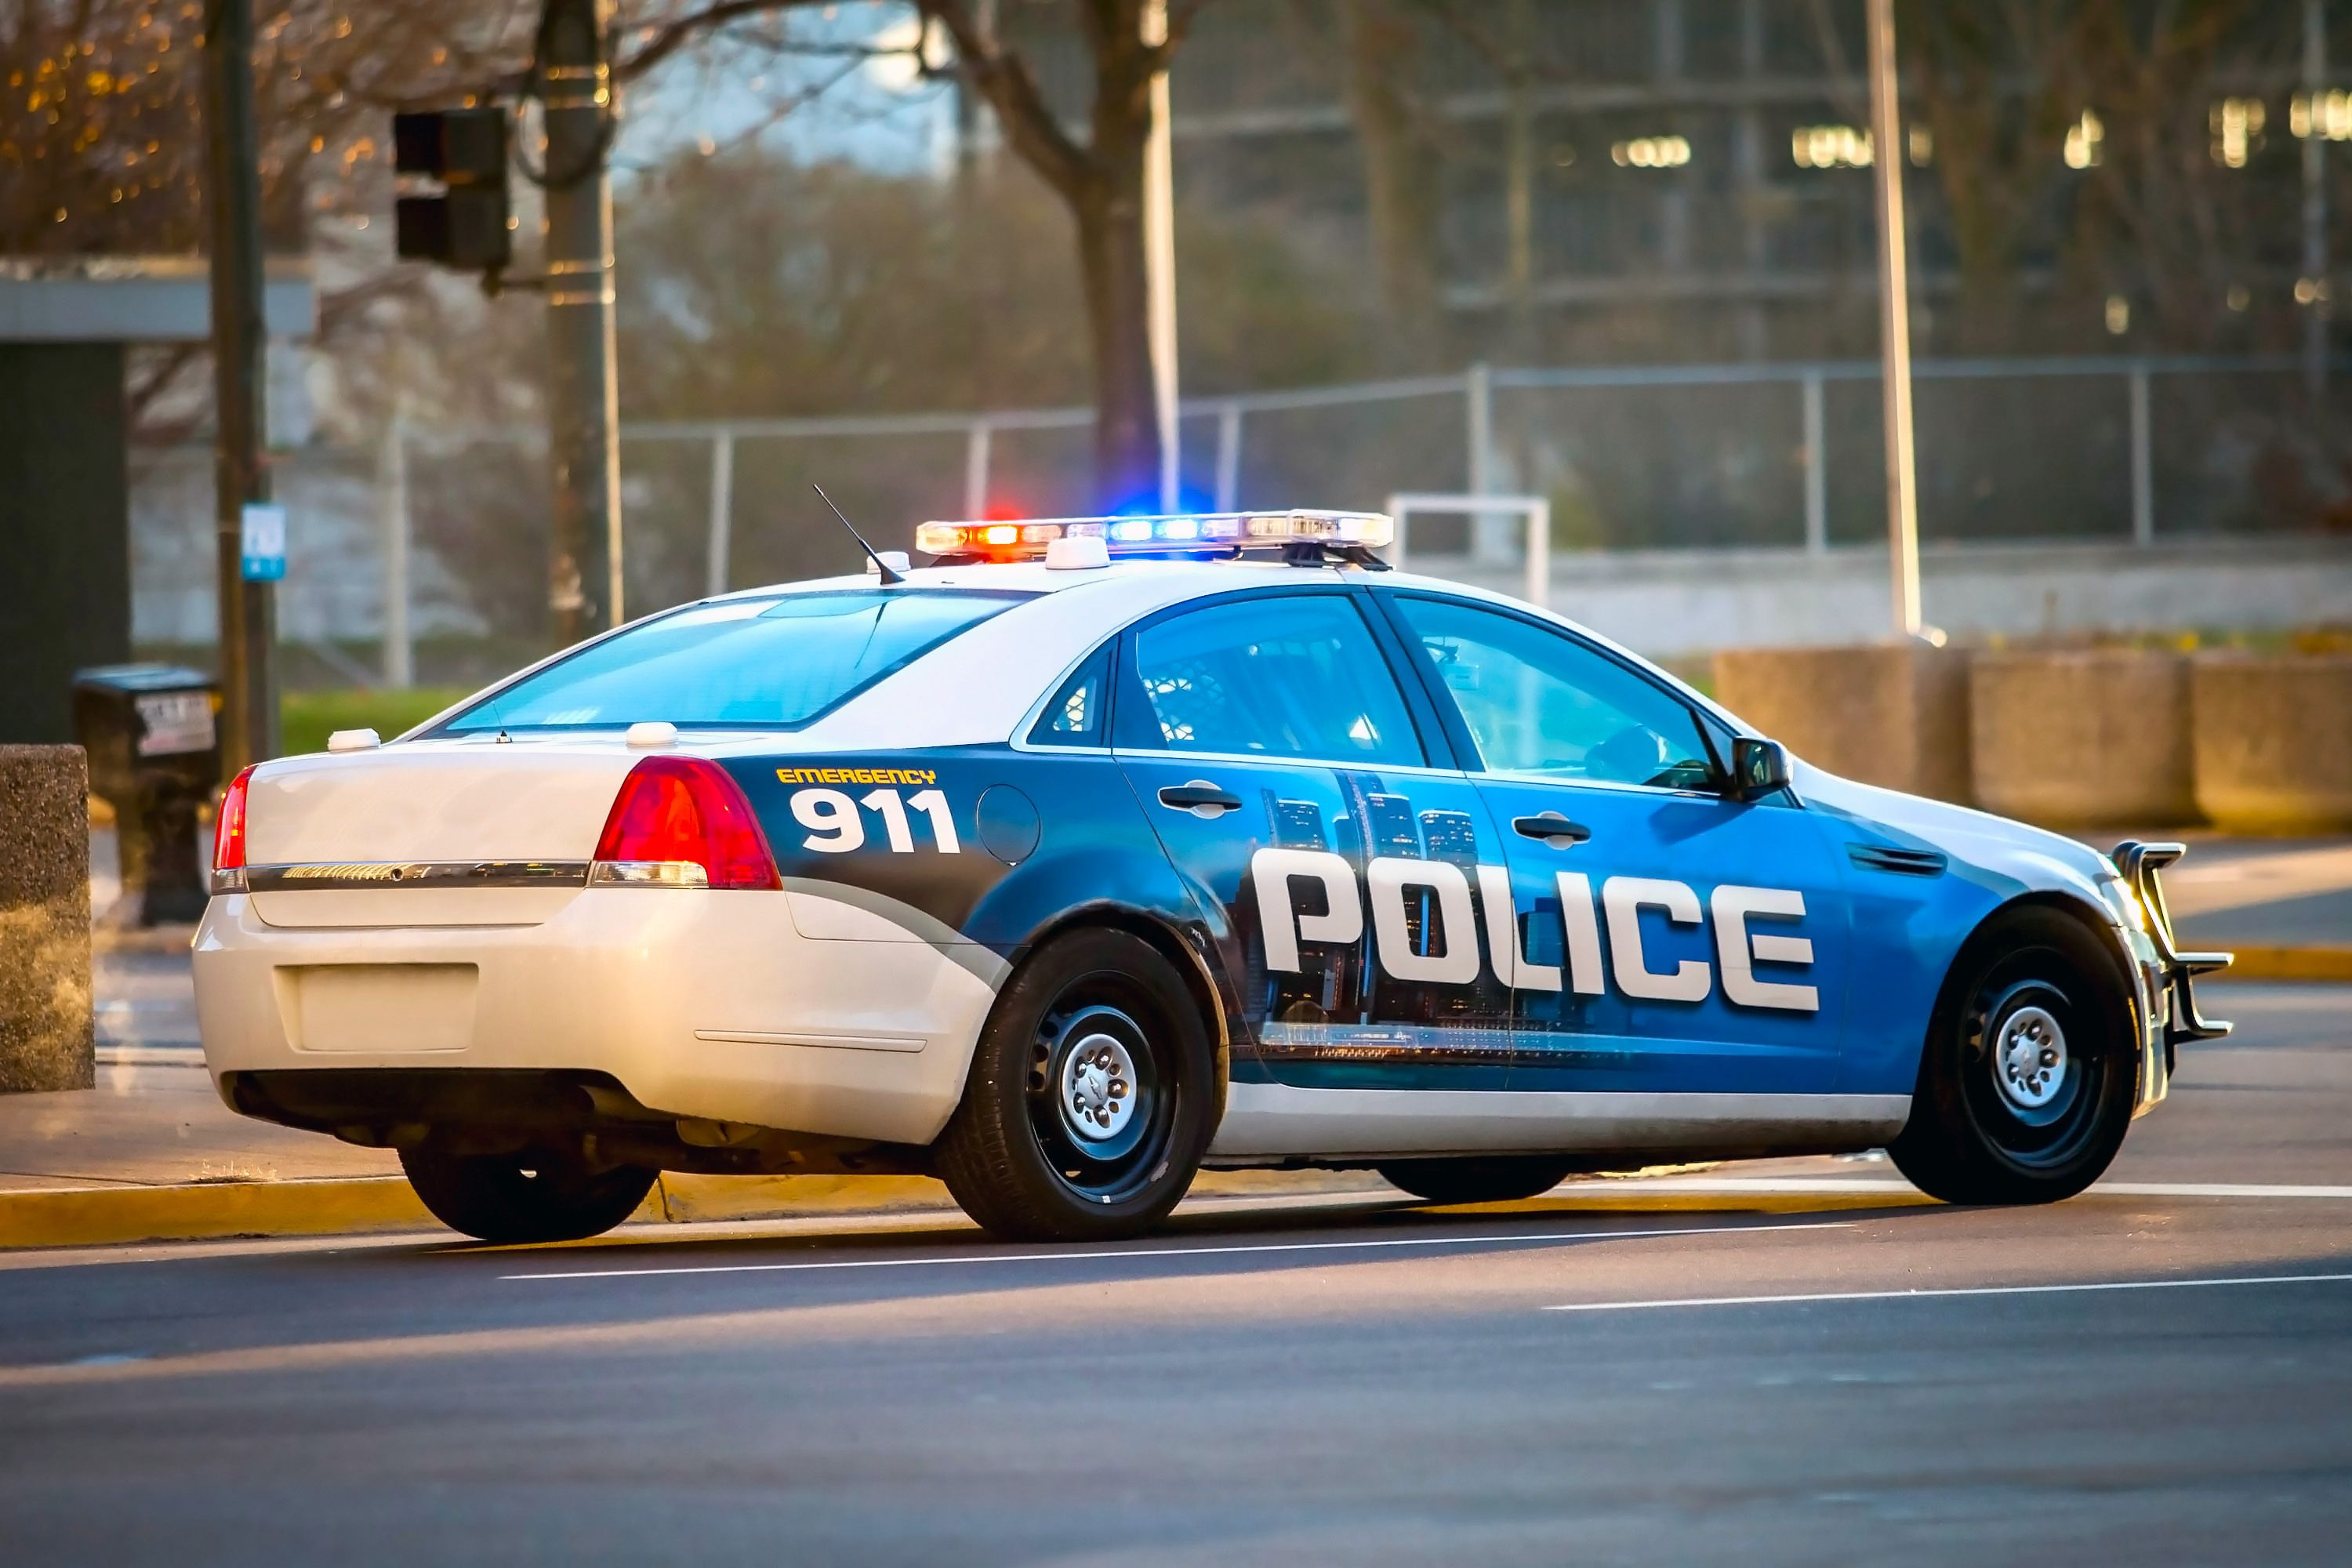 A police car driving through the street.   Source: Shutterstock